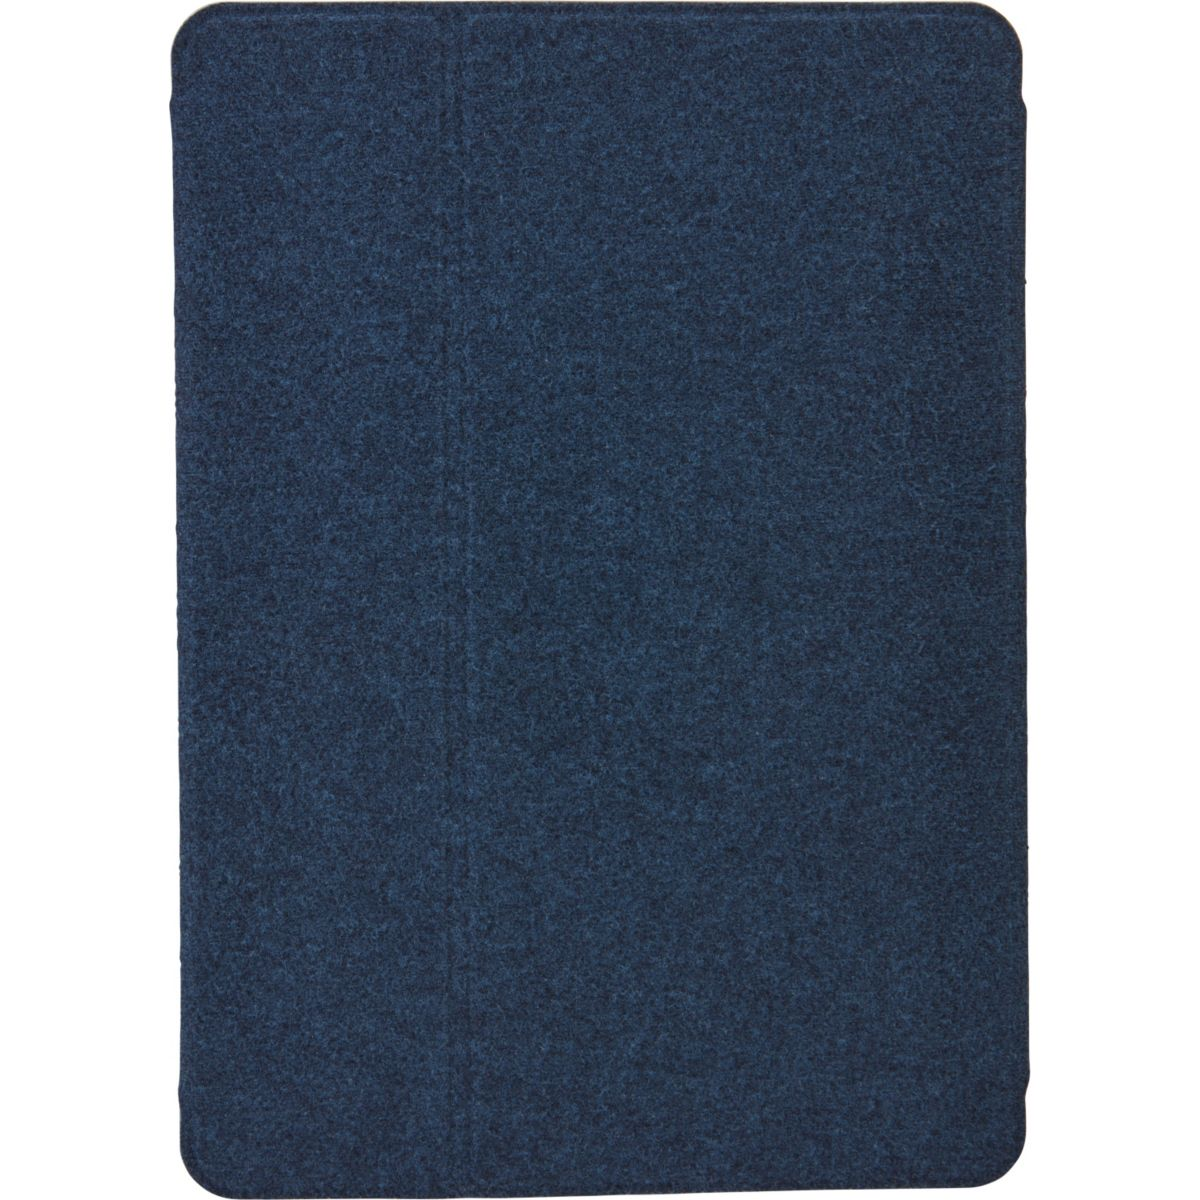 Etui CASELOGIC iPad Pro 9.7 bleu ultra slim (photo)